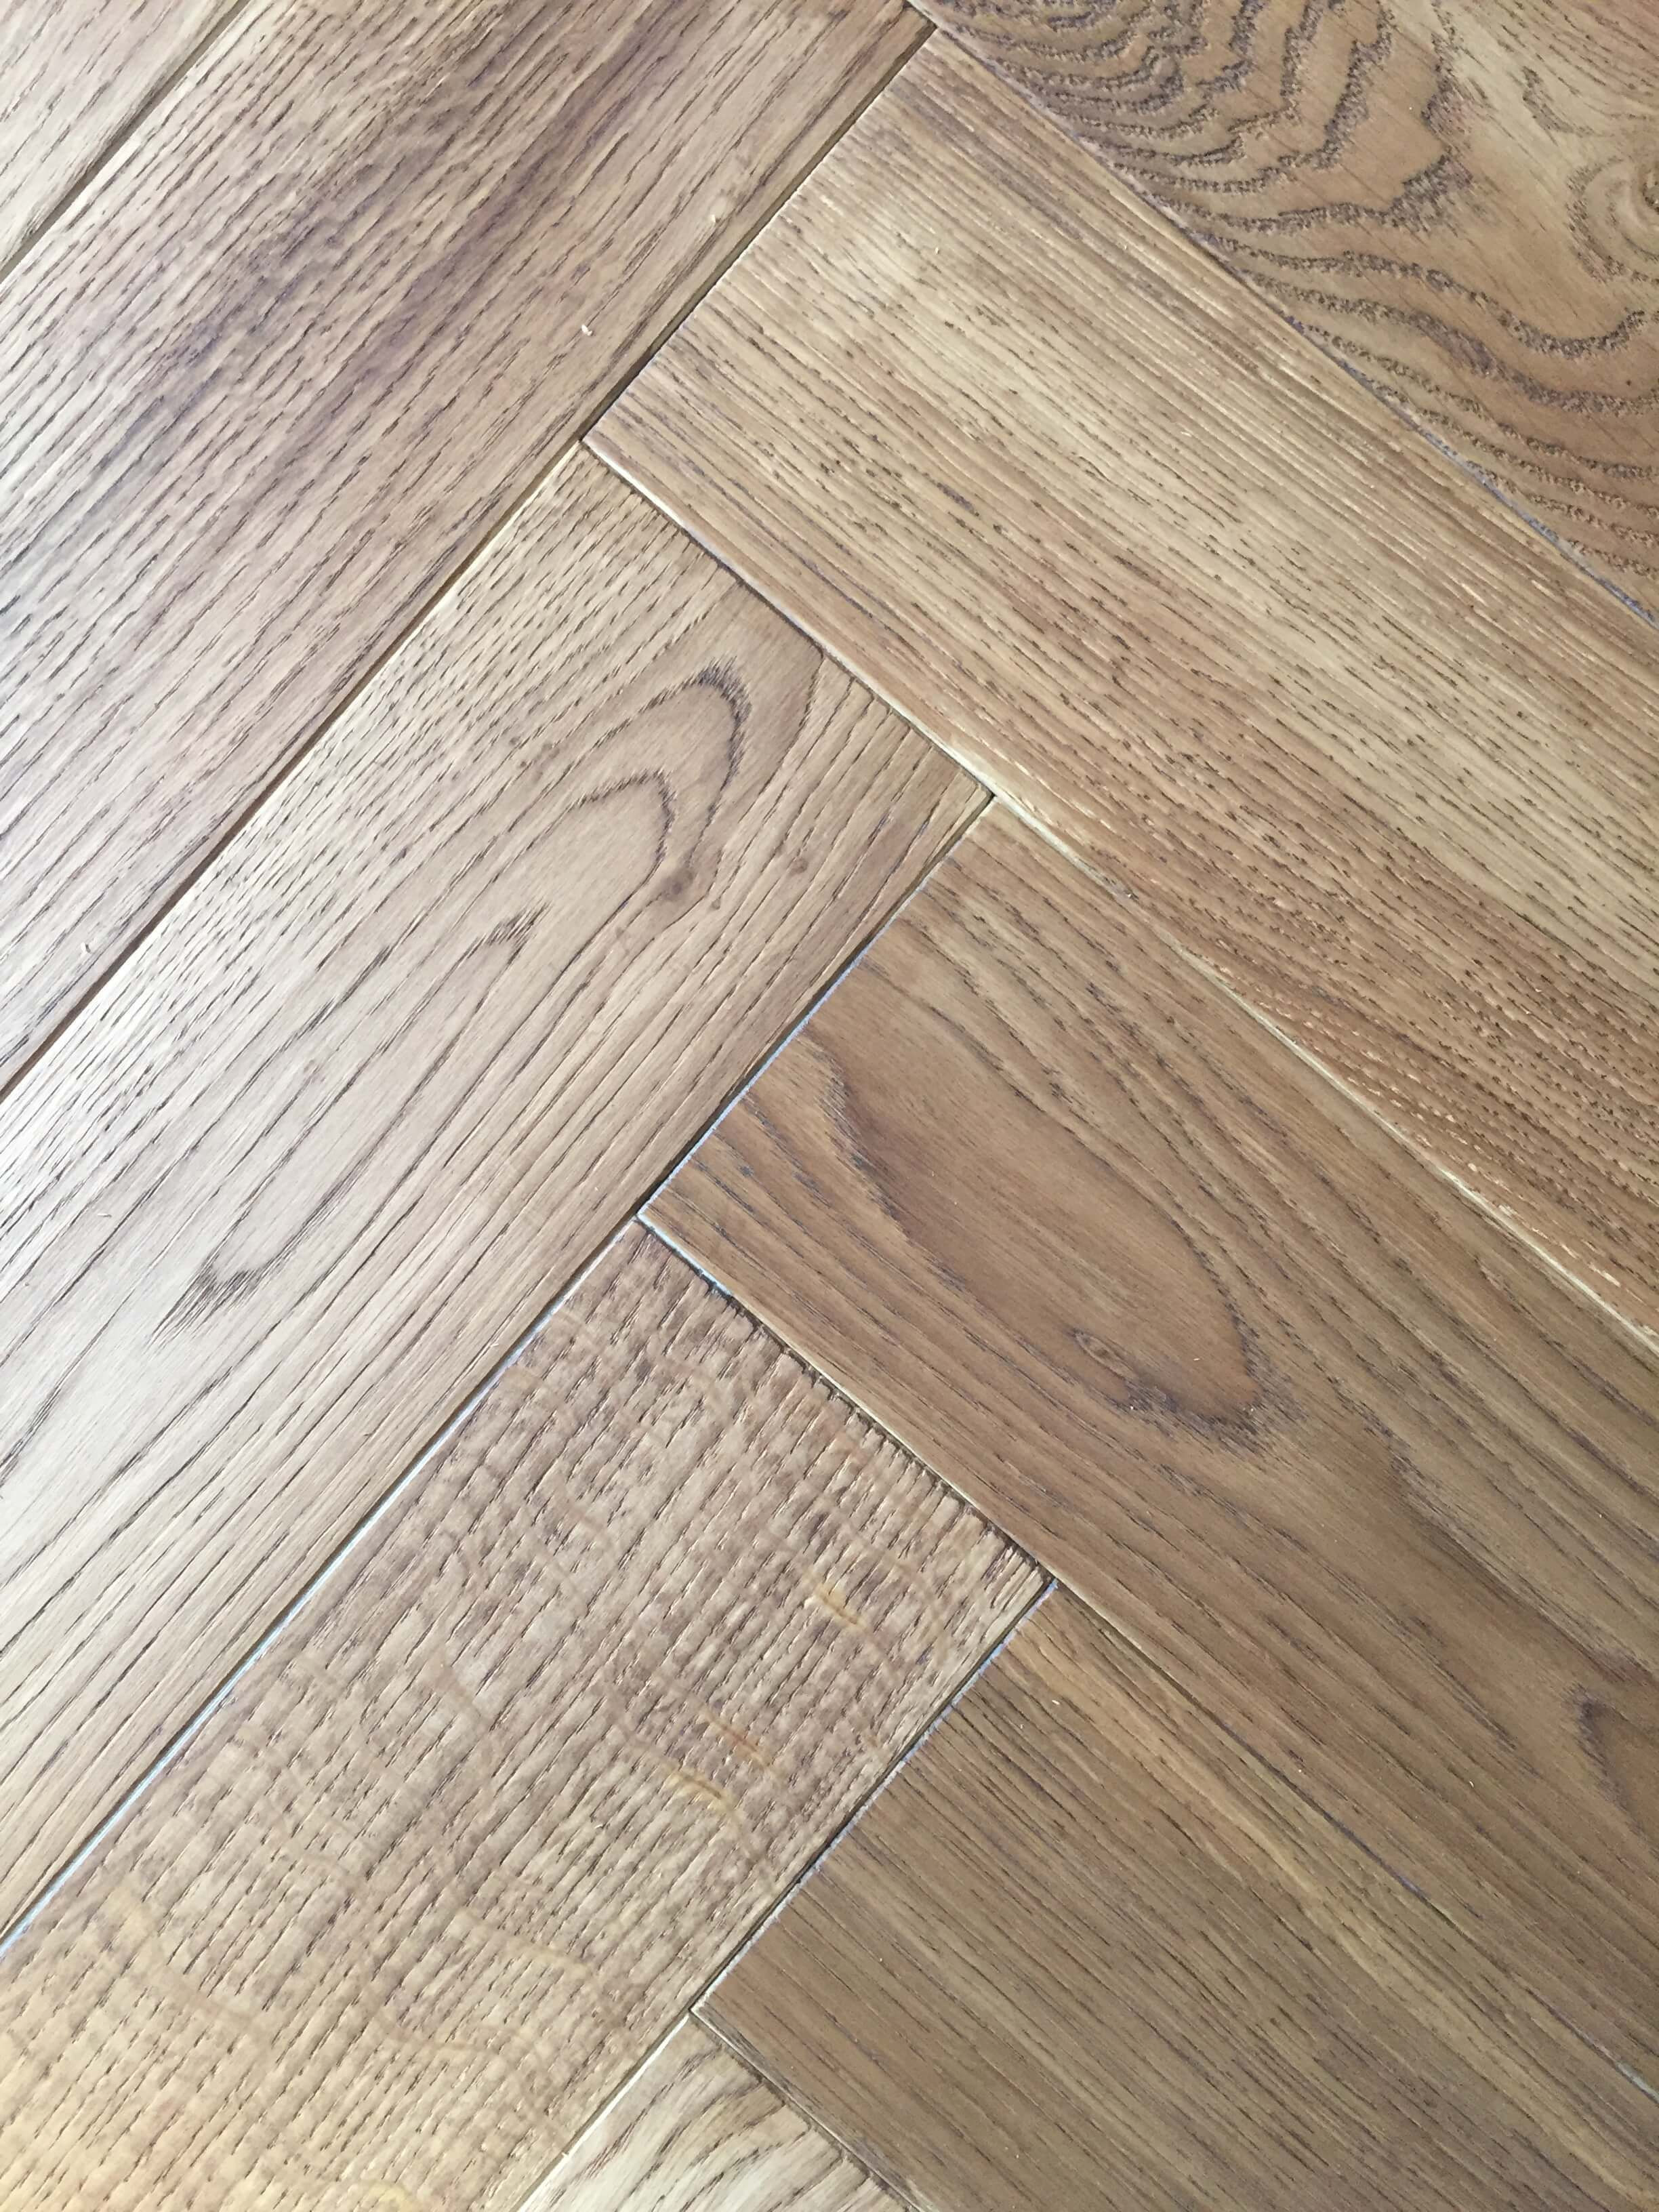 3 4 Inch Hand Scraped Hardwood Flooring Of Hand Scraped Wood Floors Floor Plan Ideas with Regard to Hand Scraped Wood Floors Hardwood Floor Design Vinyl Wood Flooring Hardwood Hand Scraped